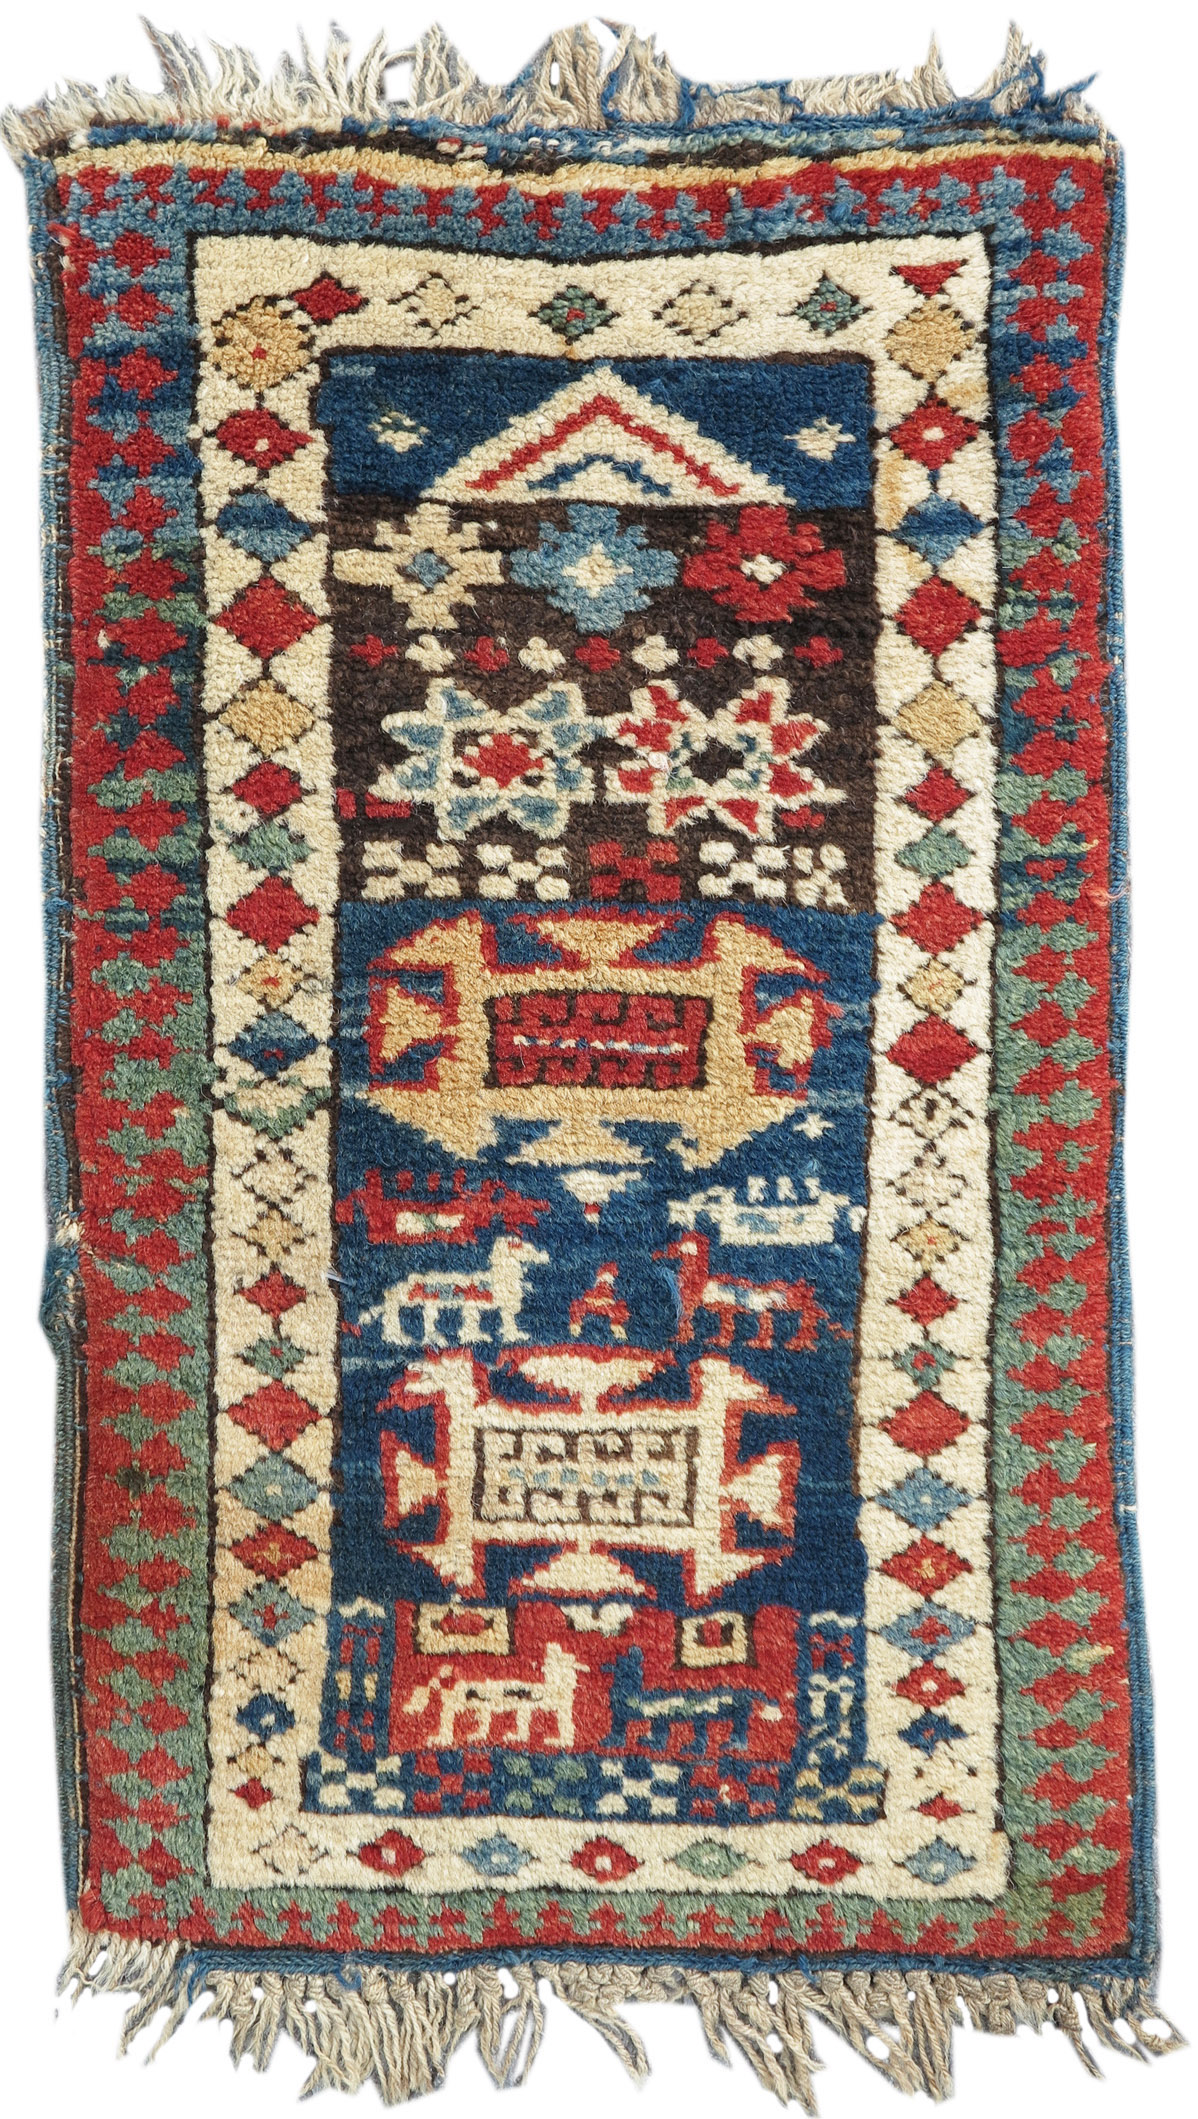 Kuba miniature prayer rug